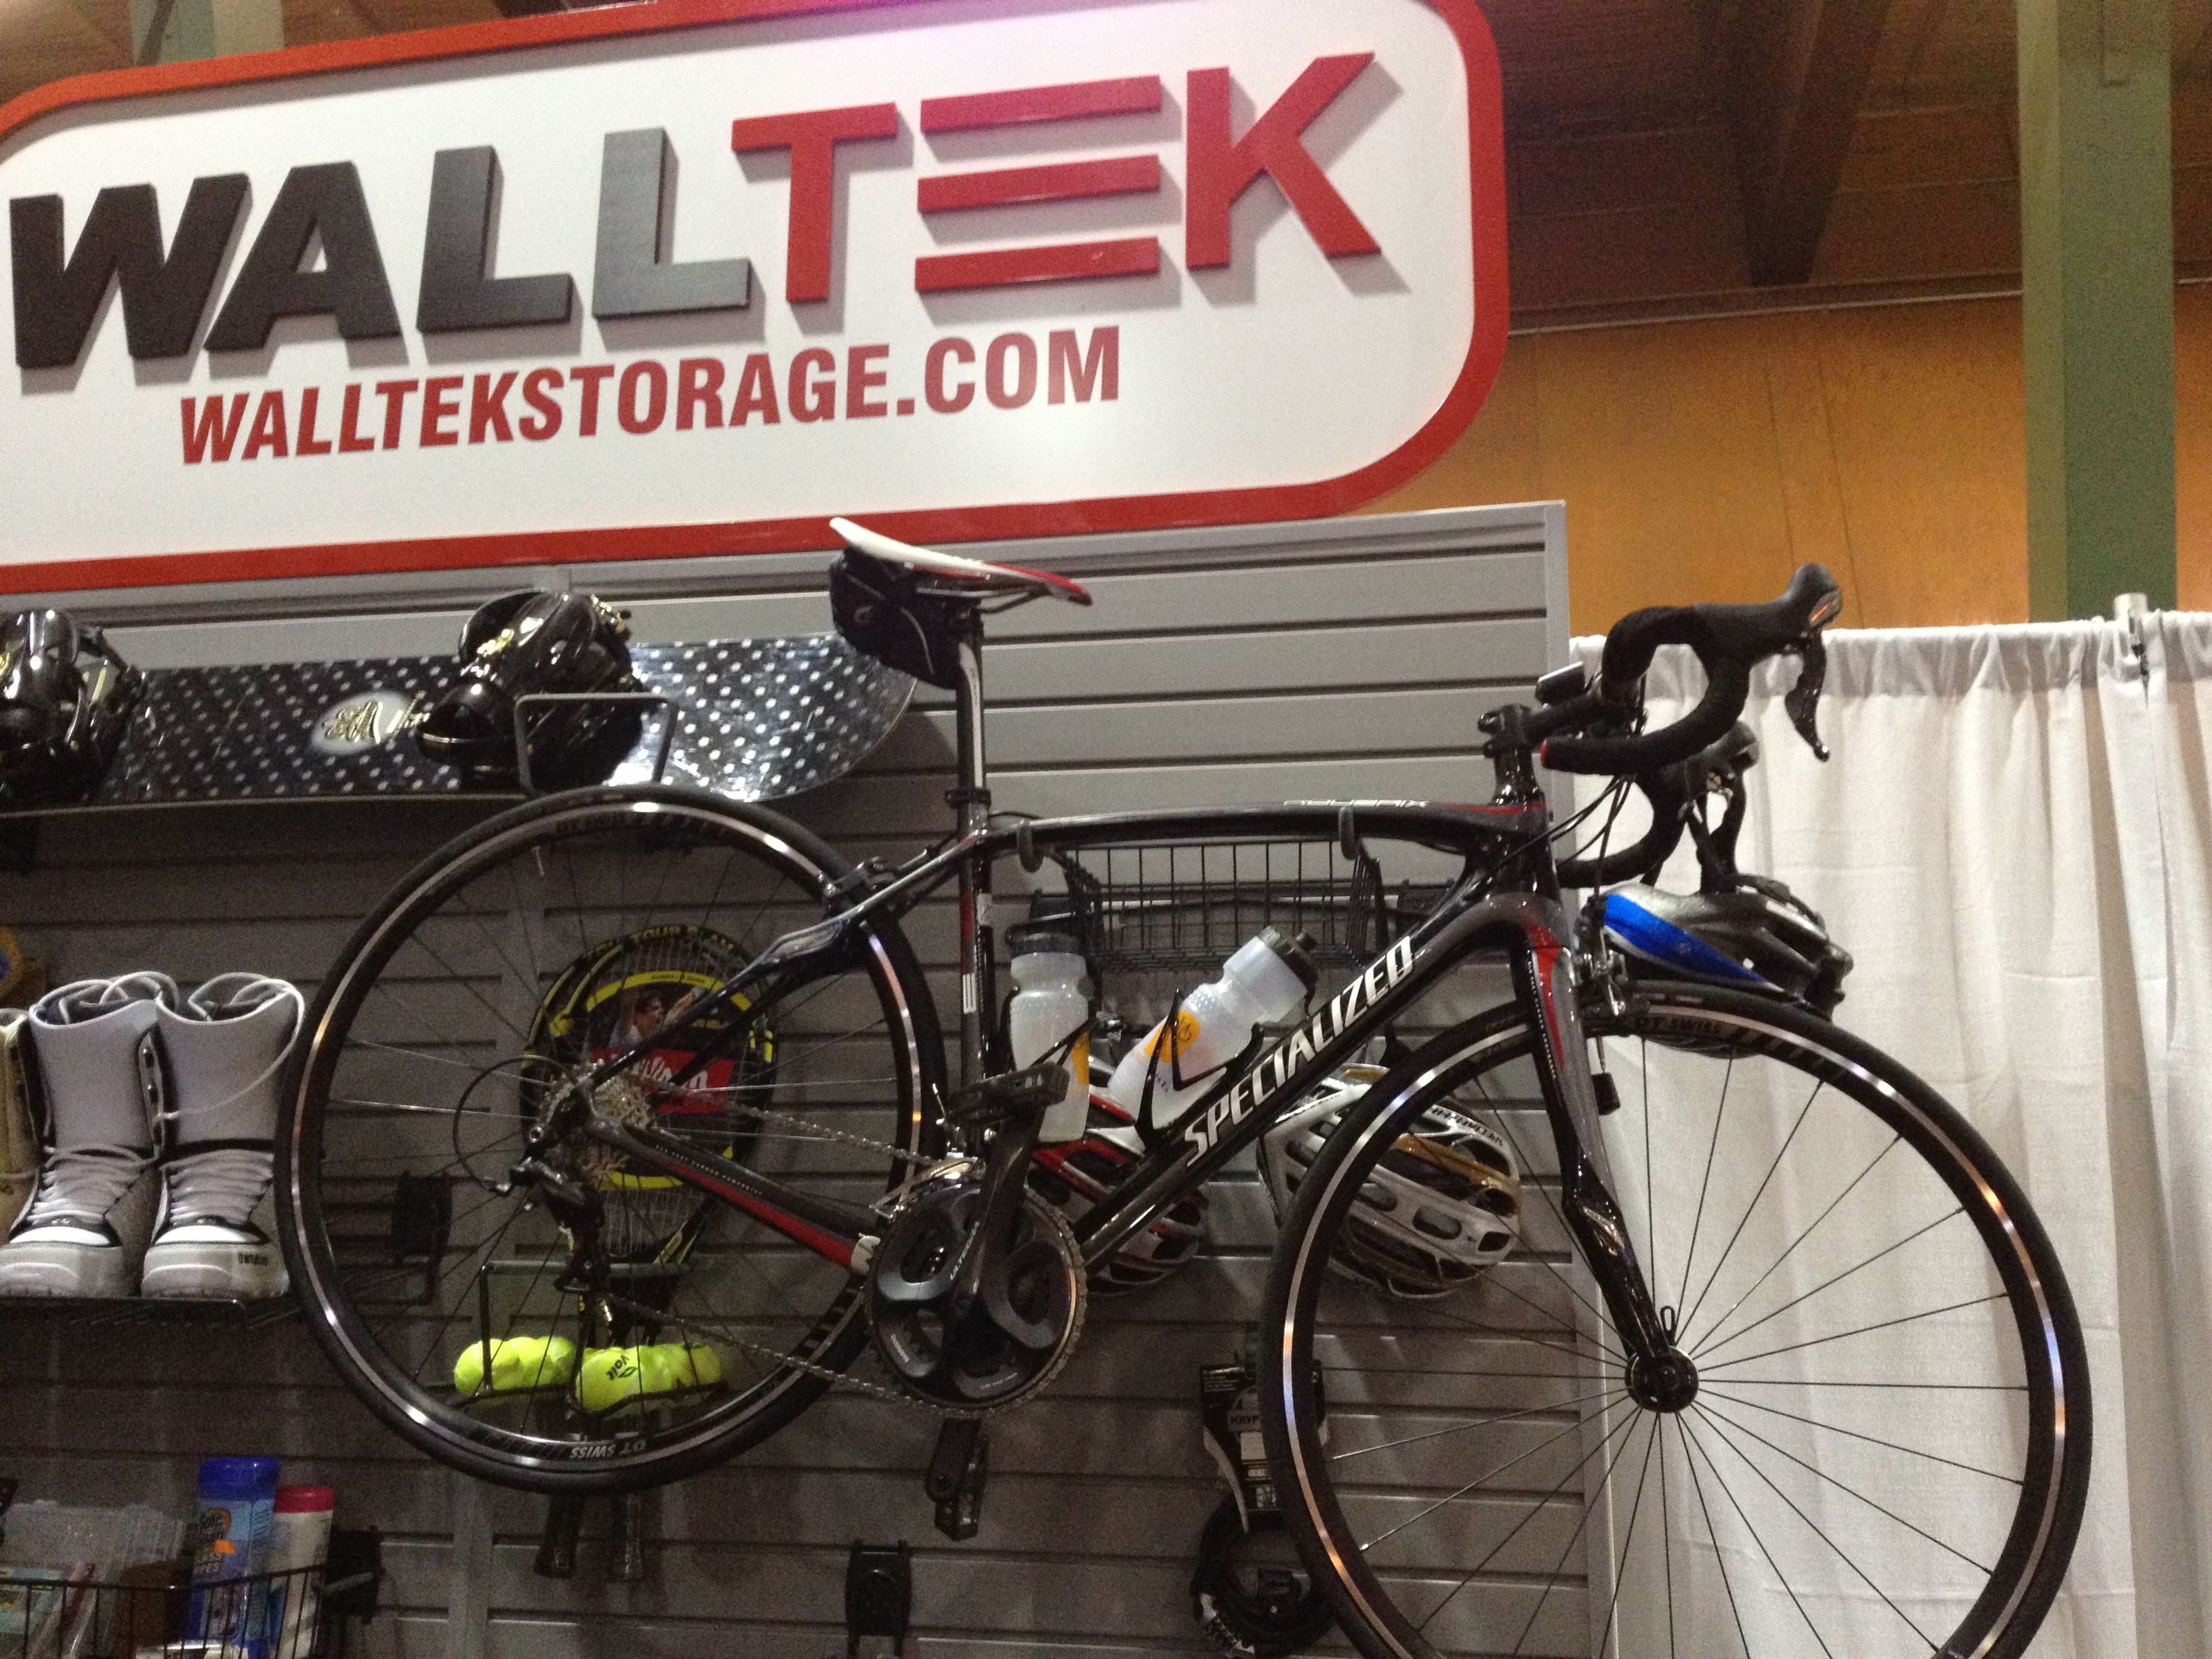 Walltek Storage Bikeorganizing Solution Using Bike Caddy Mounted